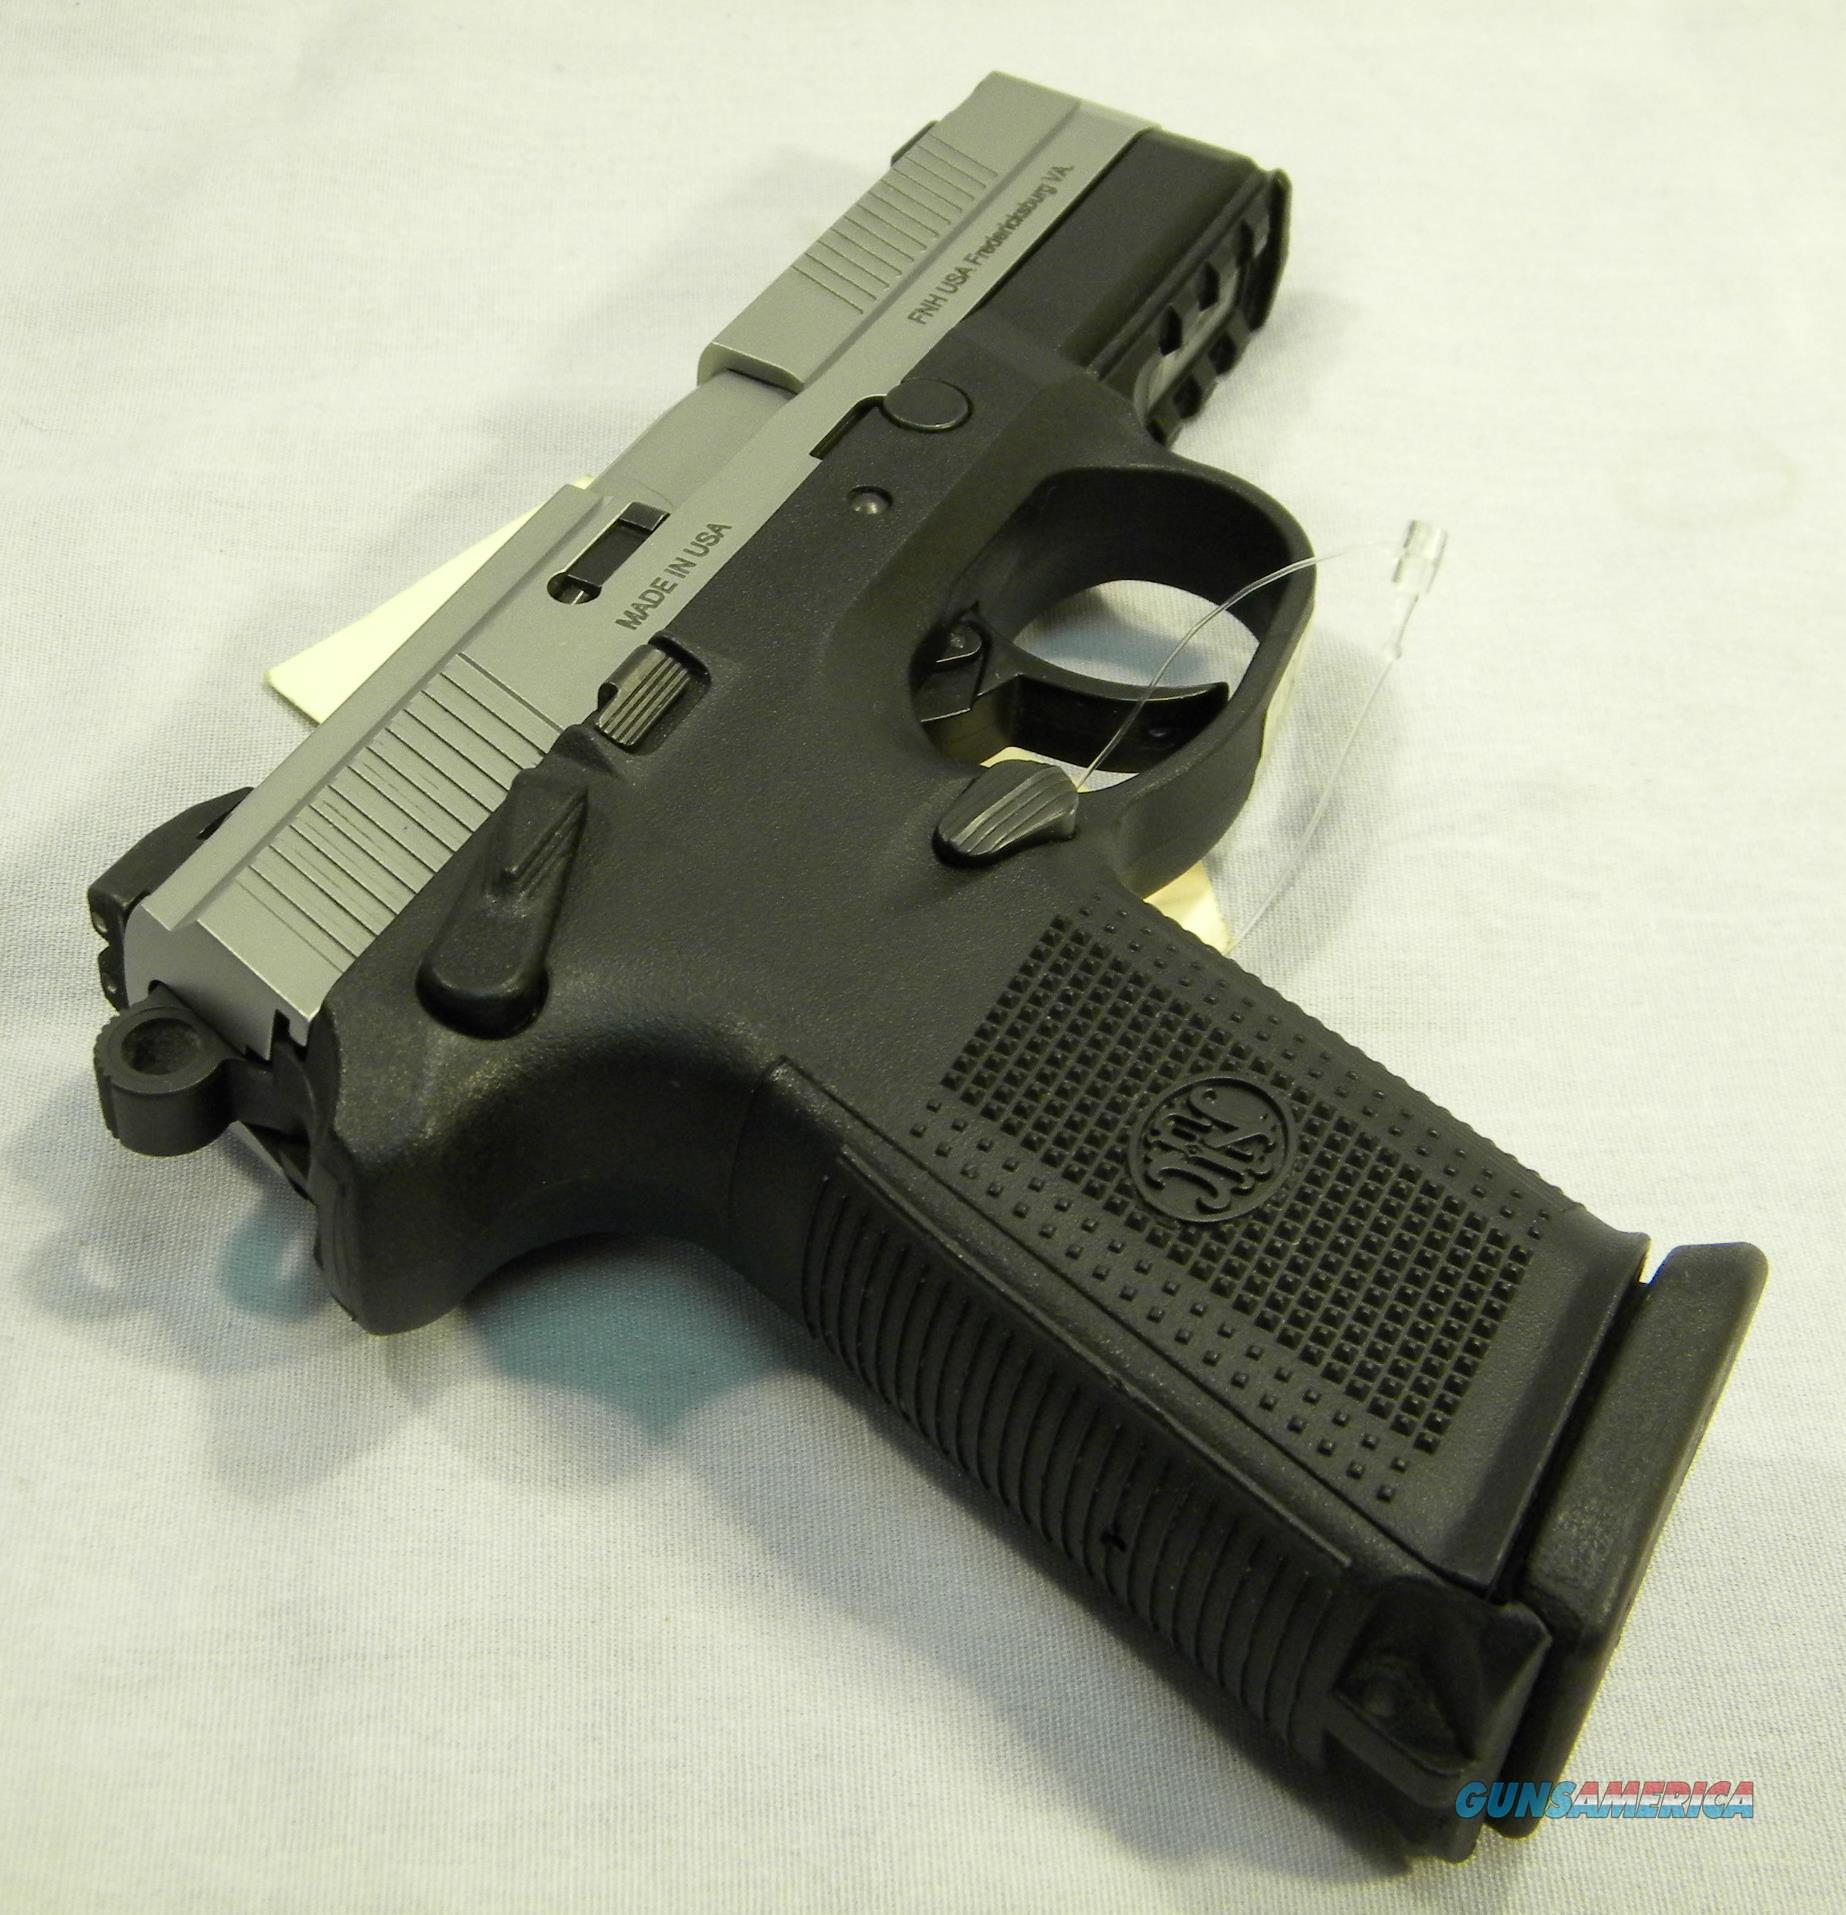 FNX-9 DA/SA Blk & SS with 3 17 rd mags  Guns > Pistols > FNH - Fabrique Nationale (FN) Pistols > FNX